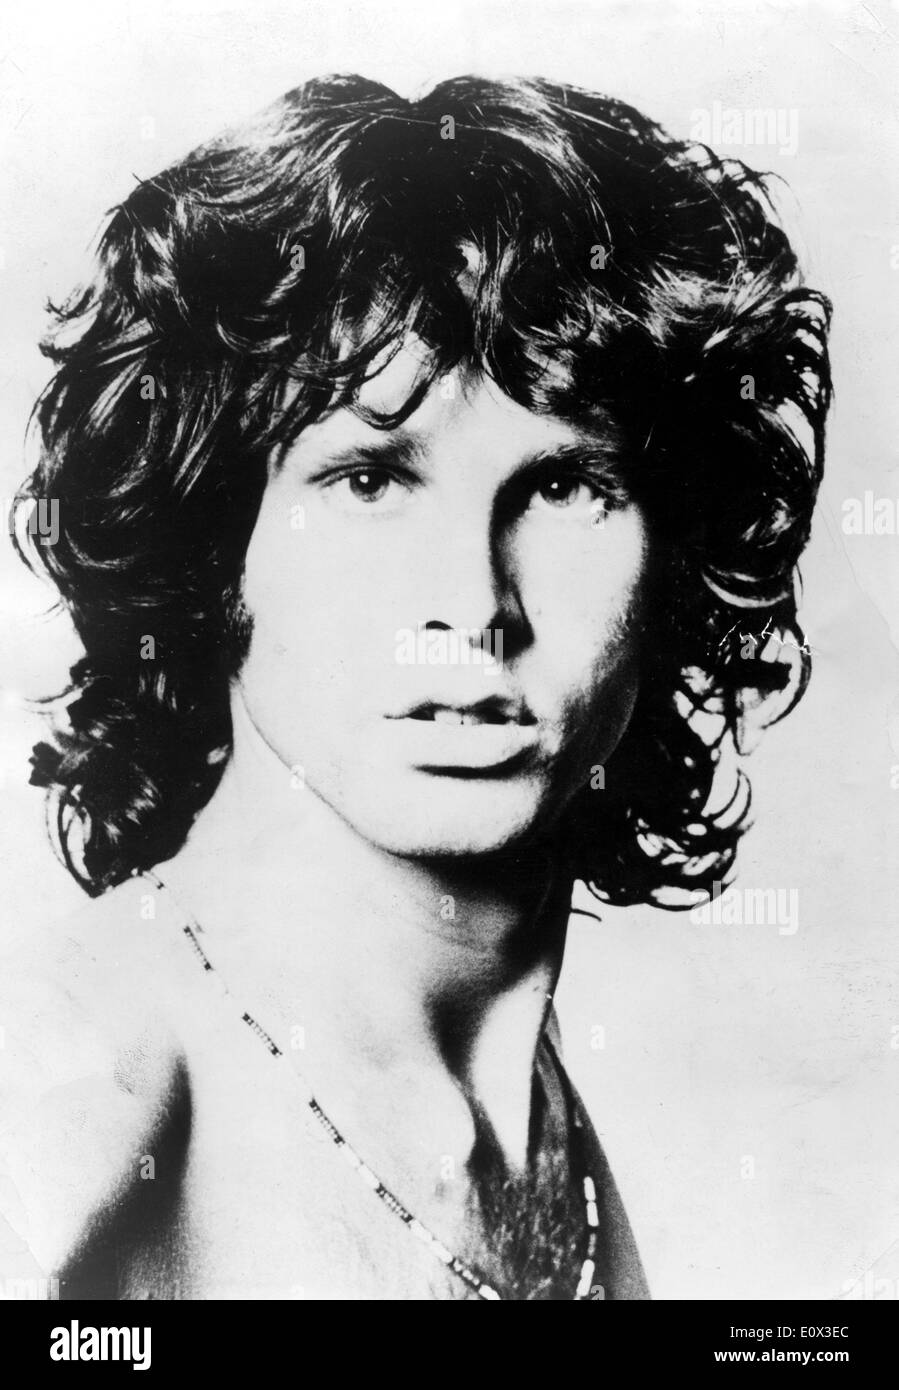 Portrait of The Doors lead singer Jim Morrison - Stock Image  sc 1 st  Alamy & Jim Morrison The Doors Stock Photos u0026 Jim Morrison The Doors Stock ...